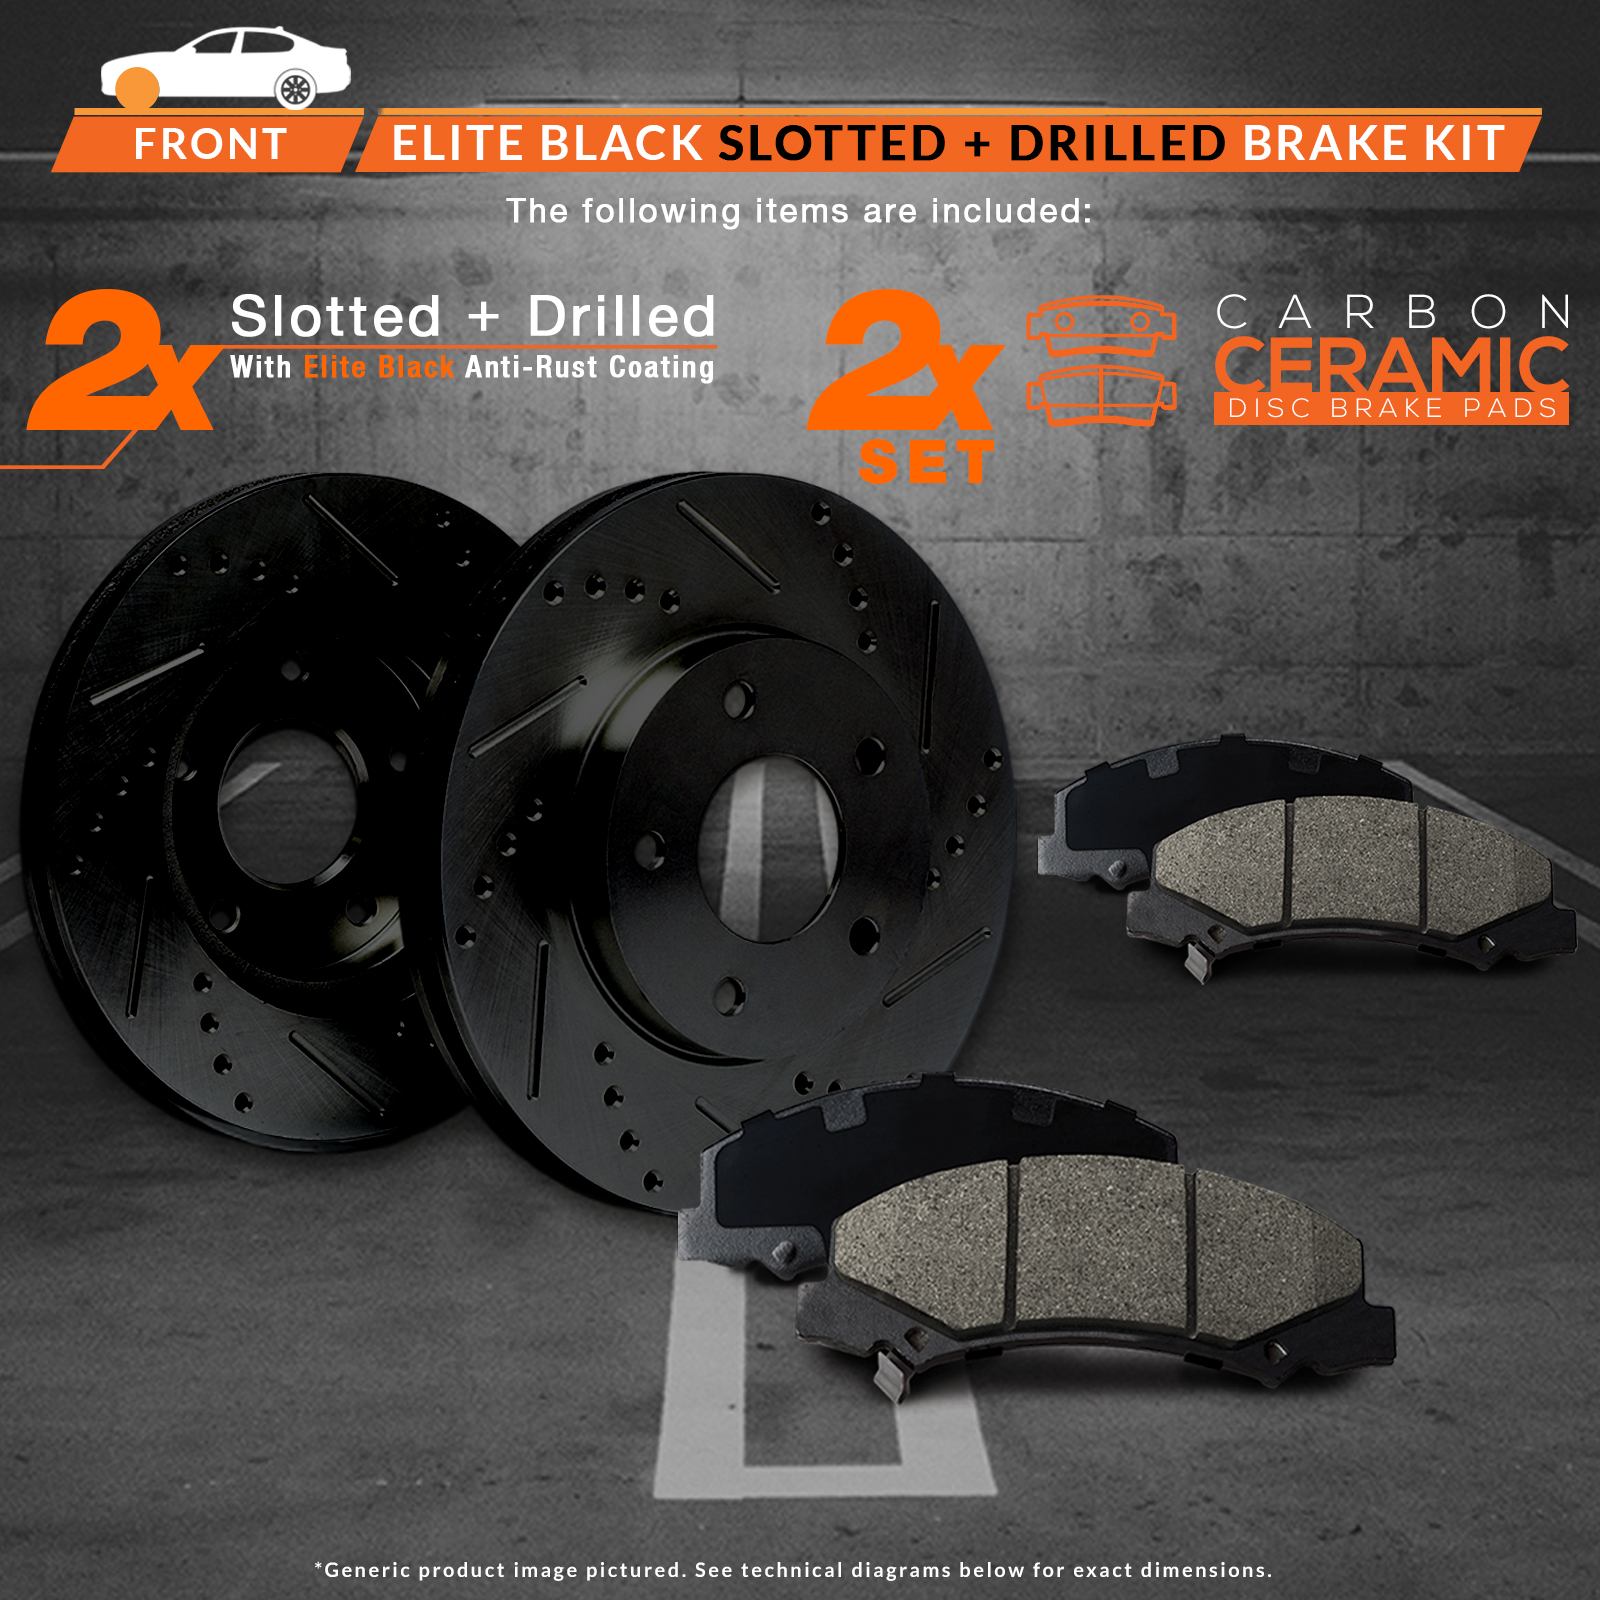 medium resolution of max brakes front elite brake kit e coated slotted drilled rotors ceramic pads kt058081 fits 1994 94 1995 95 ford mustang svt cobra gt bullitt